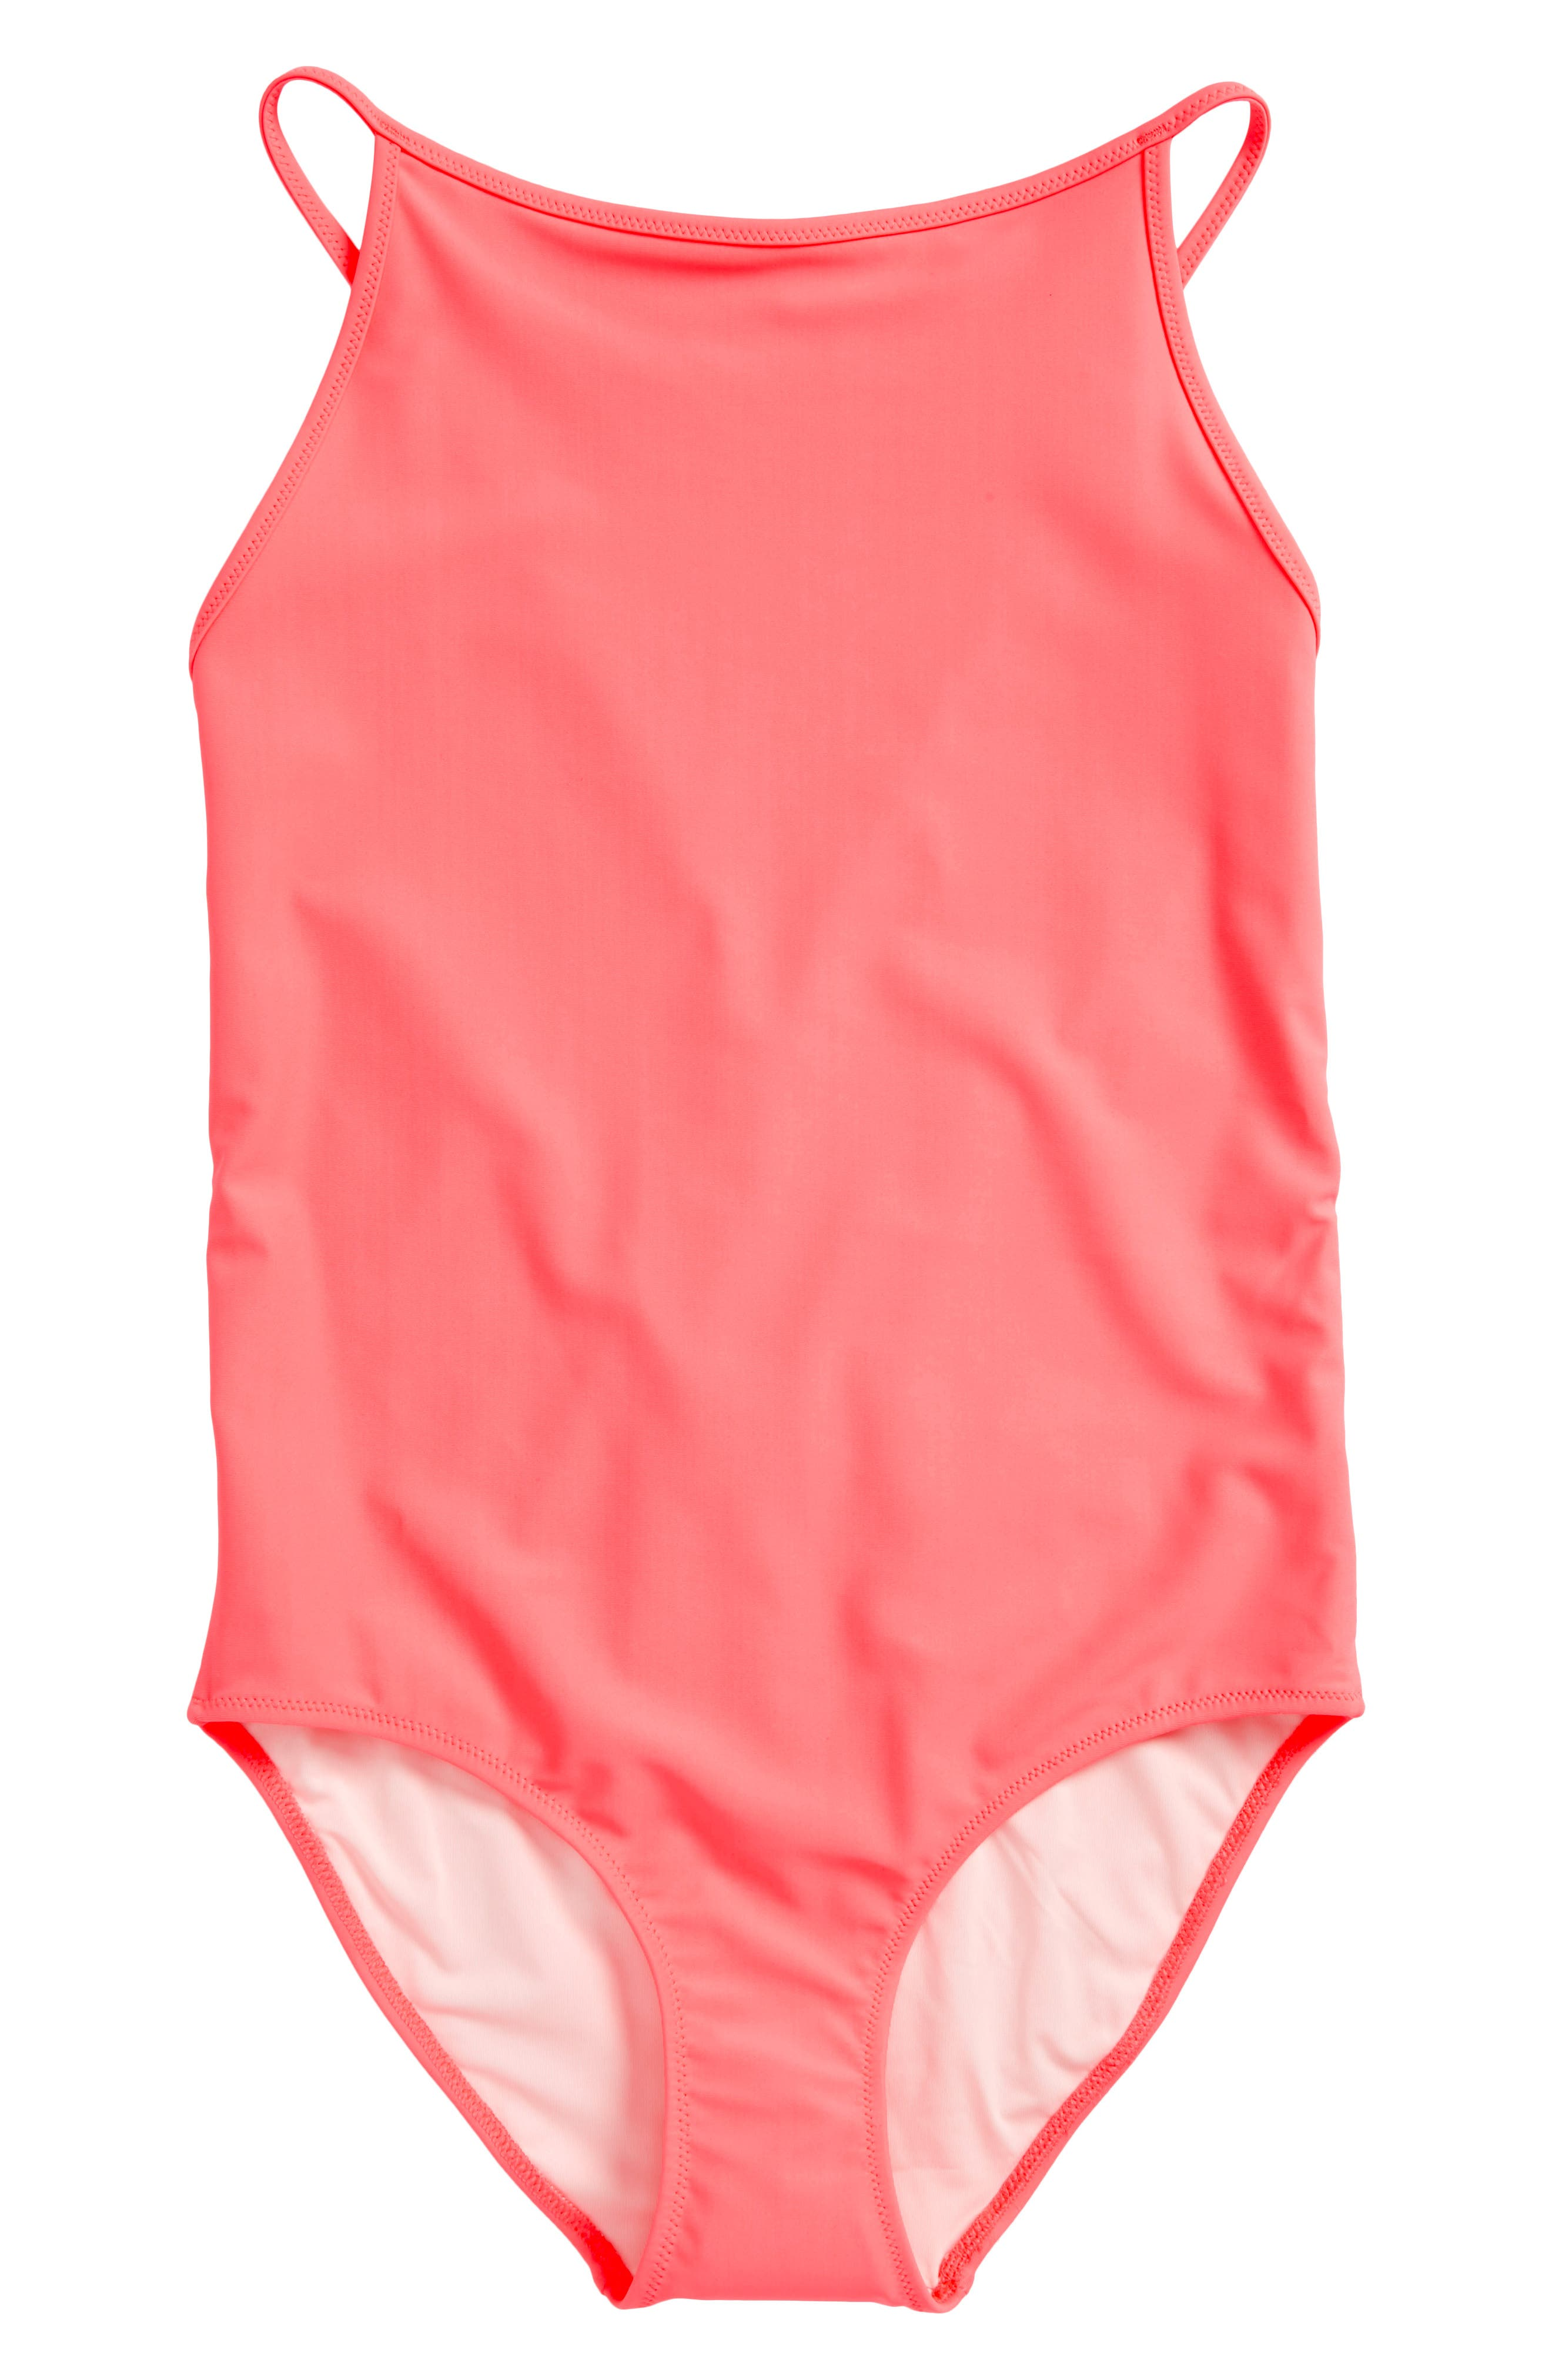 Sandine One-Piece Swimsuit,                             Main thumbnail 1, color,                             Bright Coral